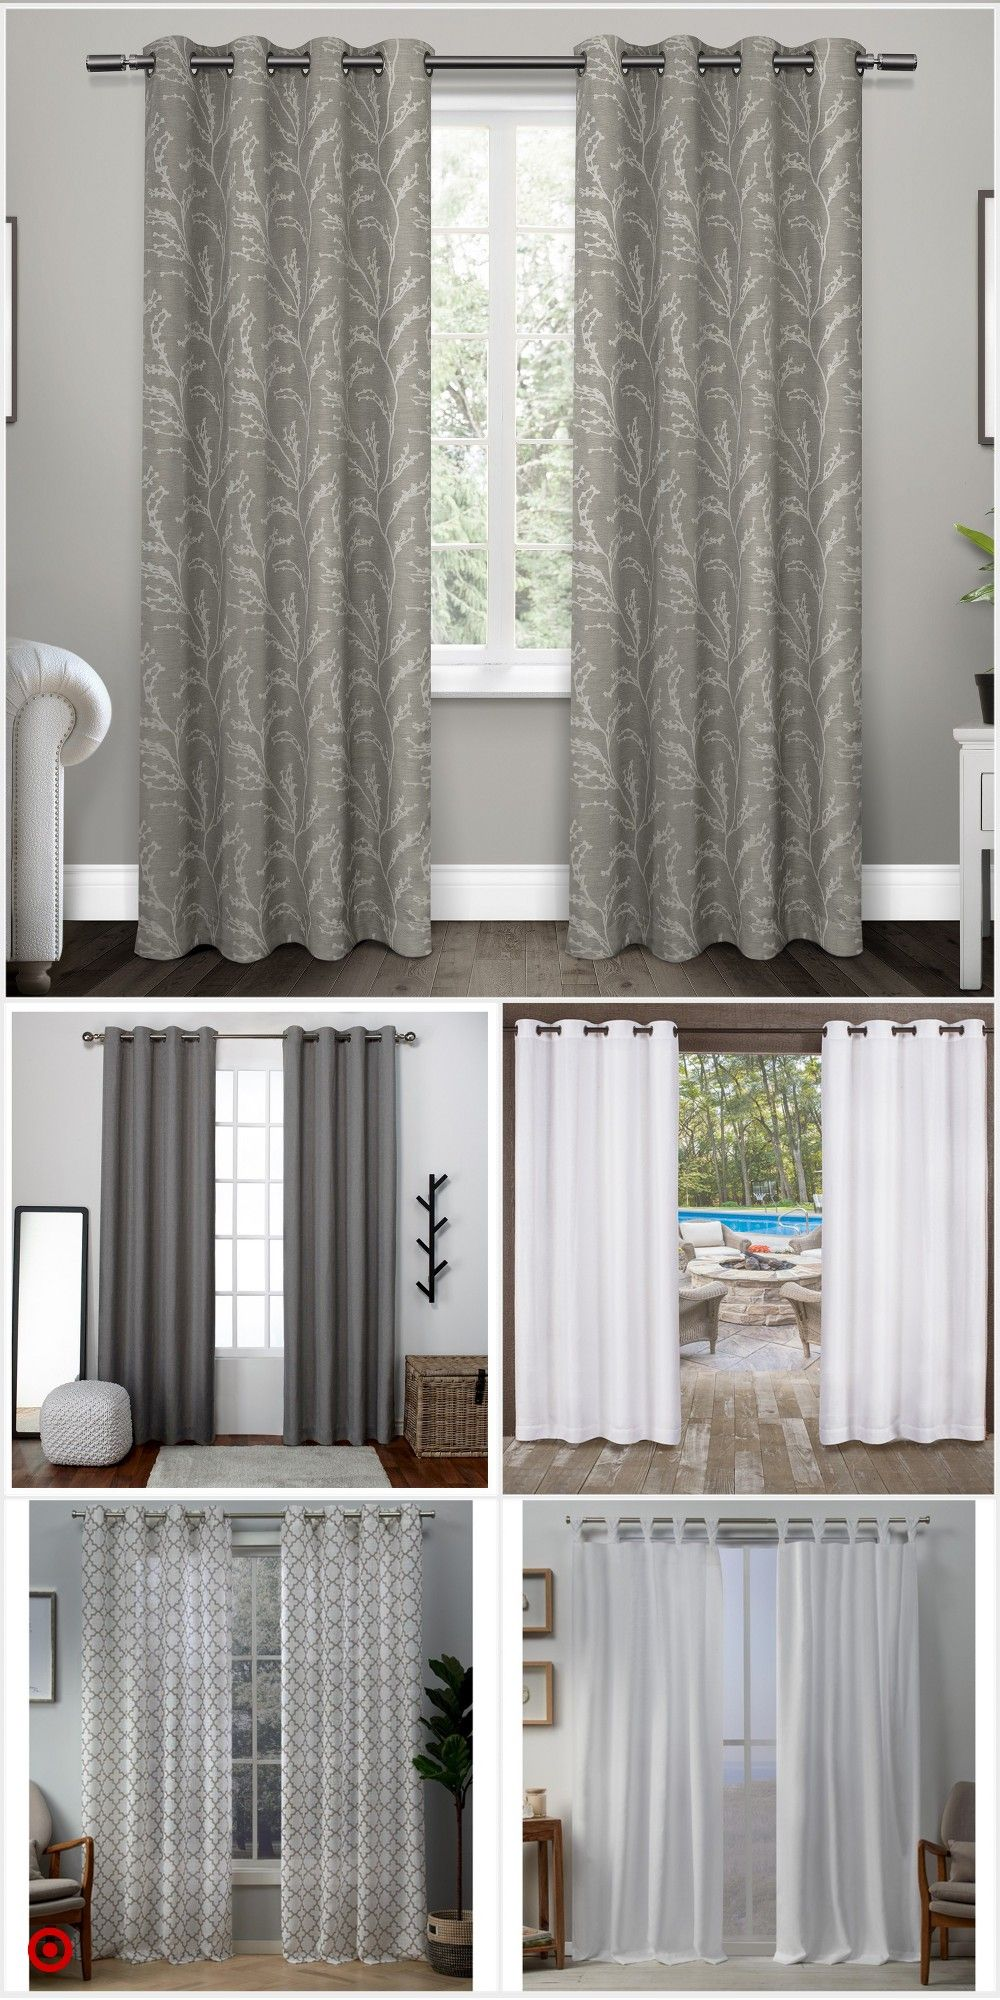 Target Curtain Panels Shop Target For Curtain Panels You Will Love At Great Low Prices